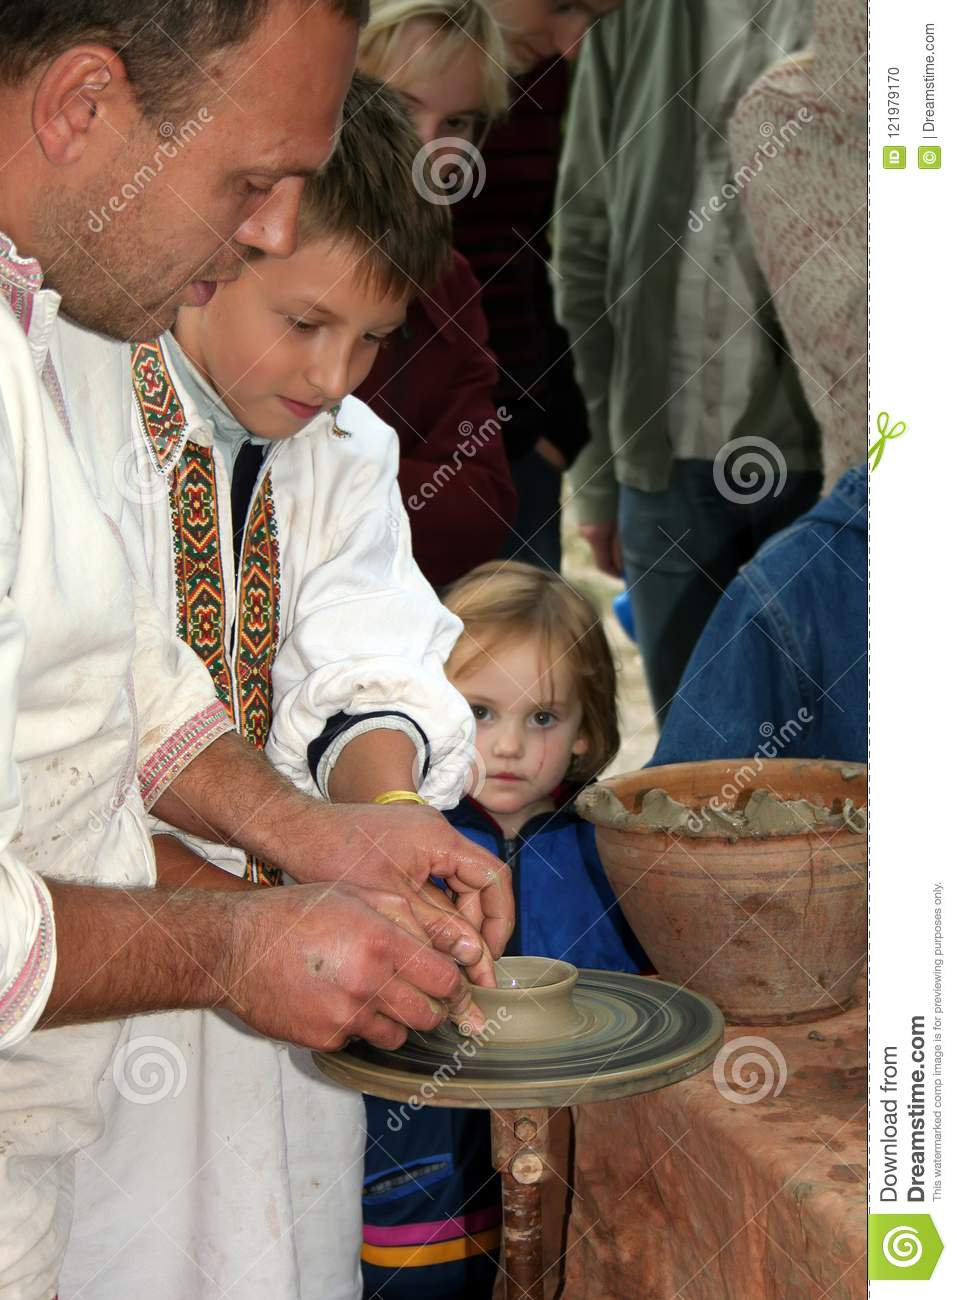 Kiev, Ukraine, 08.10.2005. The potter is teaching children the art of pottery